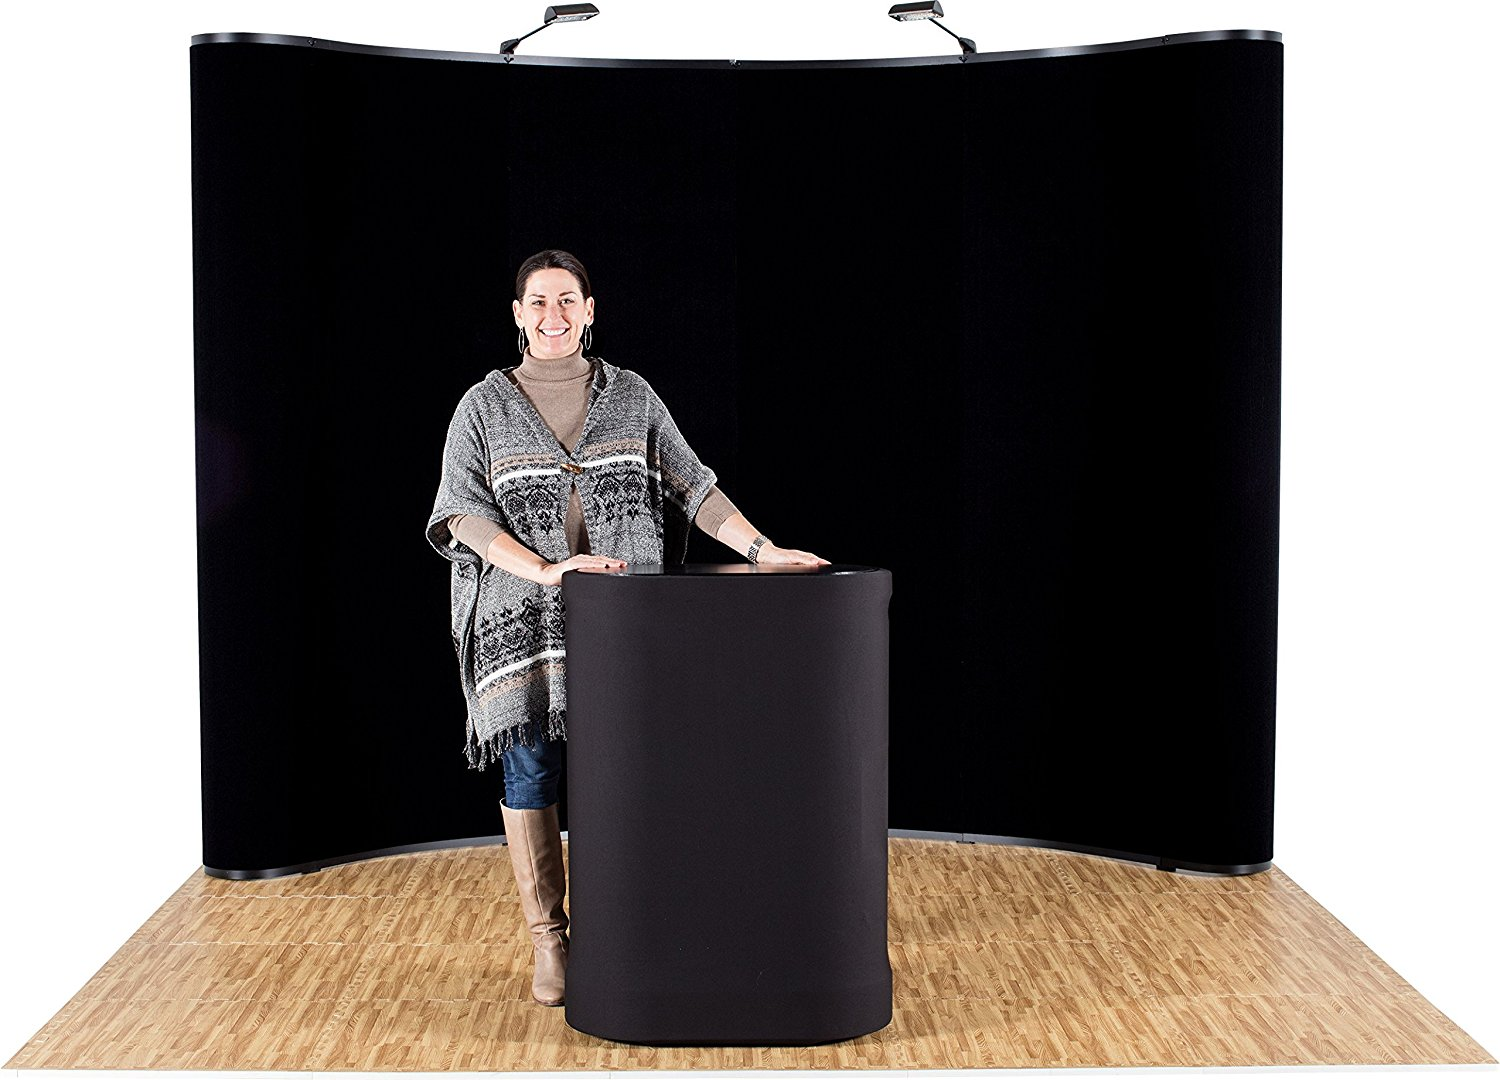 Ace Exhibits - 10' x 8' CURVED POP UP DISPLAY - Trade Show Display Exhibit Booth - Tradeshow Backdrop - Tradeshow Displays - Trade Show Booth Display - Pop Up Exhibit Backdrop Exhibit Stand